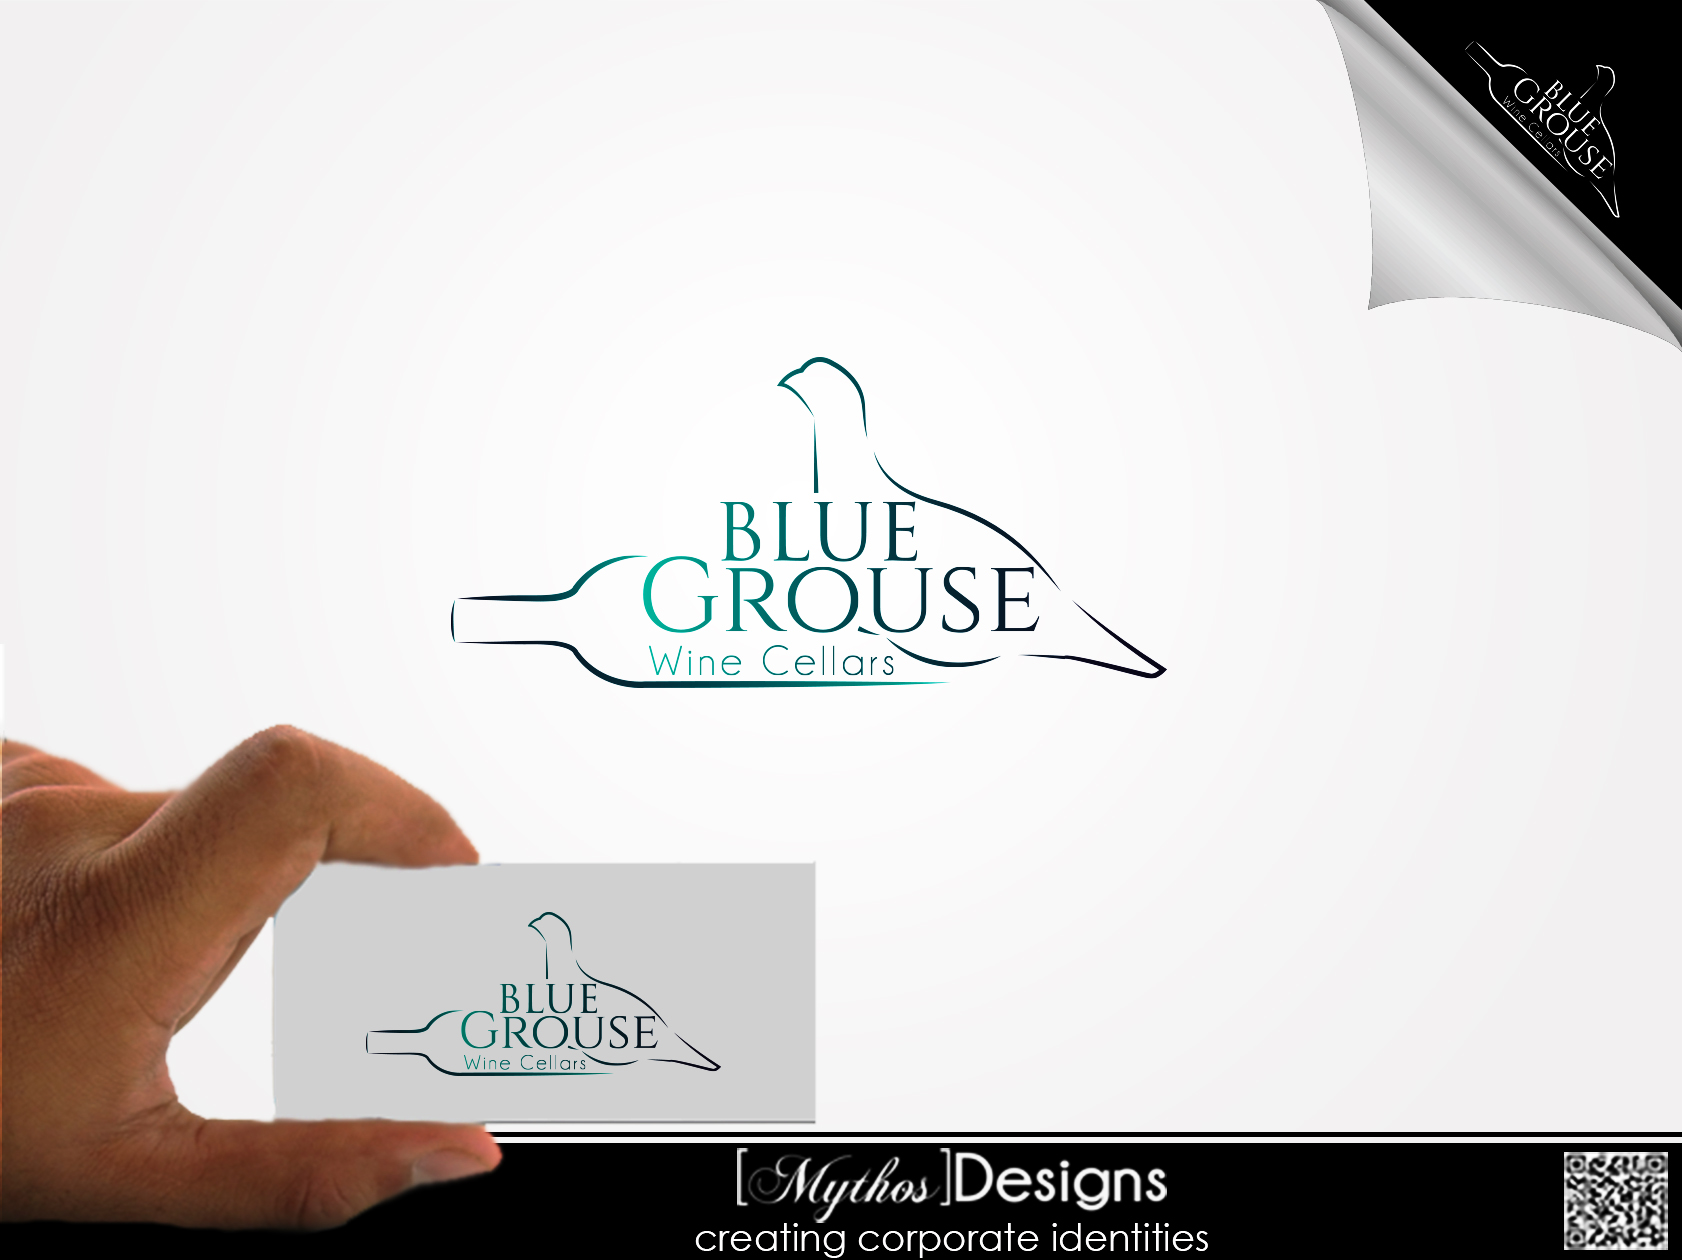 Logo Design by Mythos Designs - Entry No. 84 in the Logo Design Contest Creative Logo Design for Blue Grouse Wine Cellars.